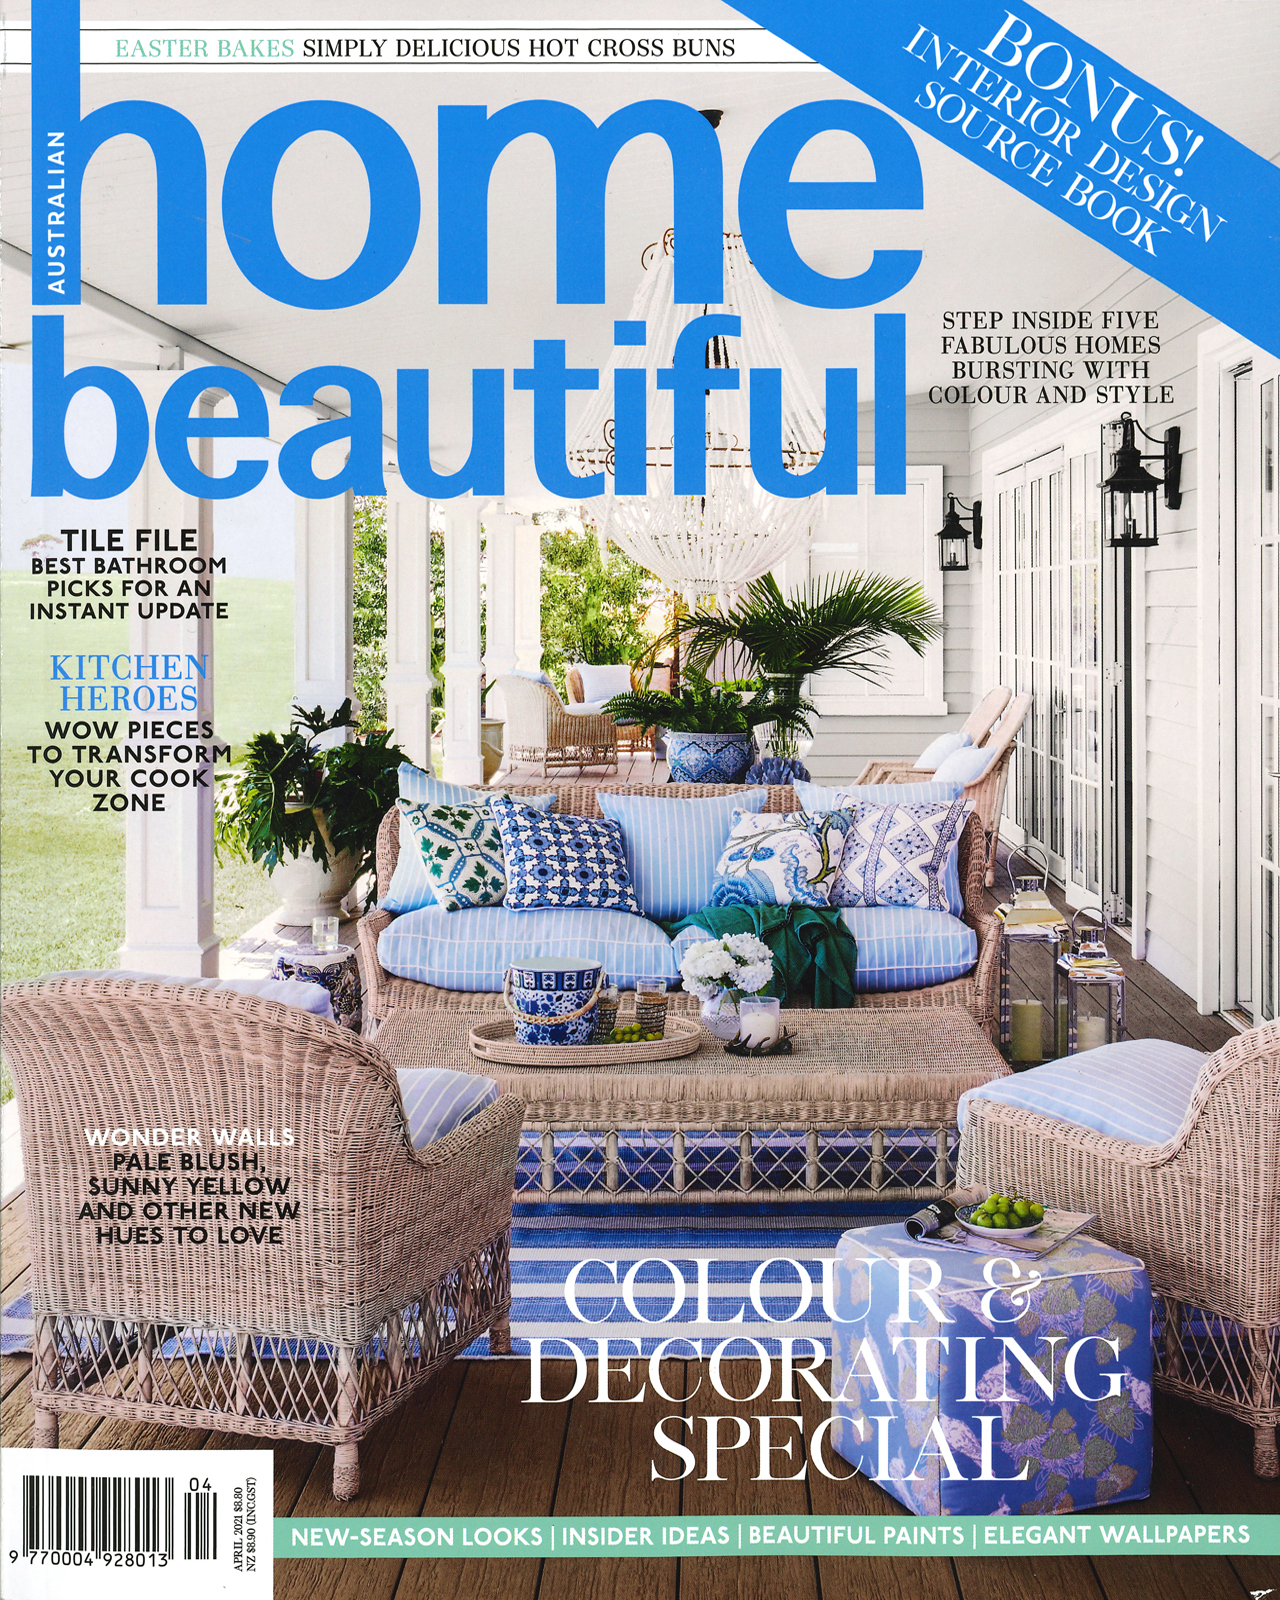 Studio Black Interiors is proudly featured in the April 2021 edition of Home Beautiful Magazine